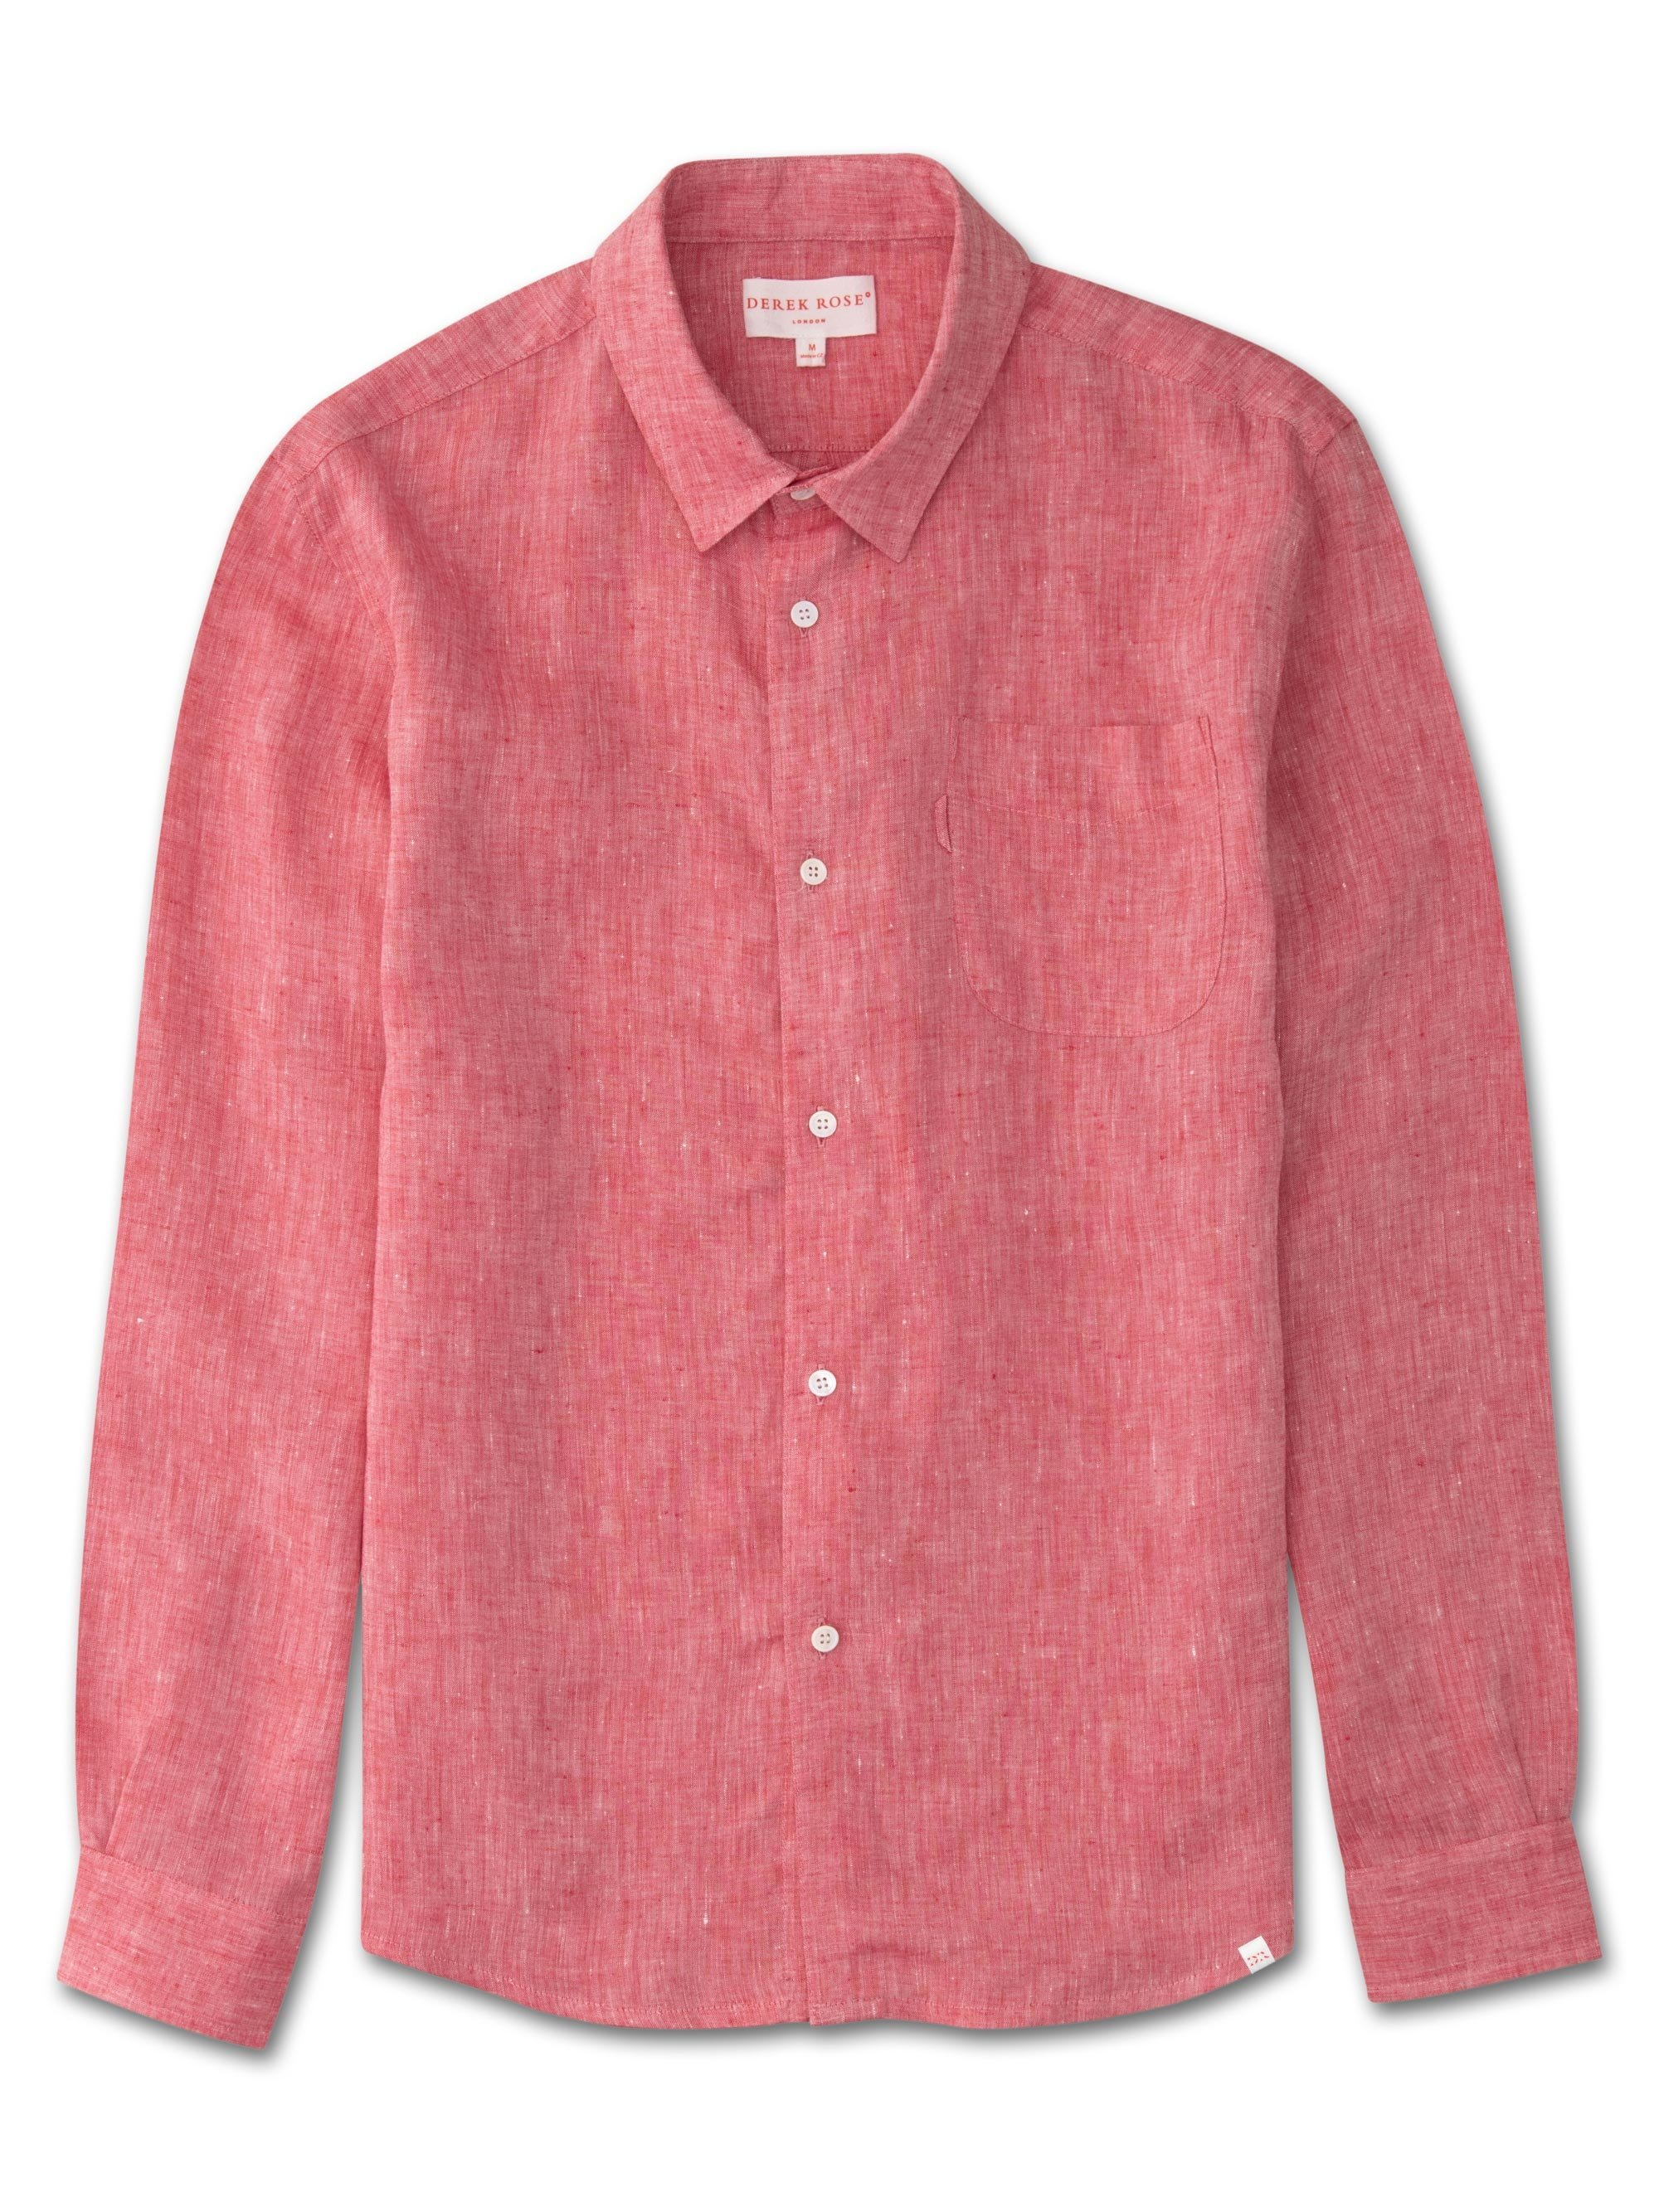 Men's Linen Shirt Monaco Pure Linen Red